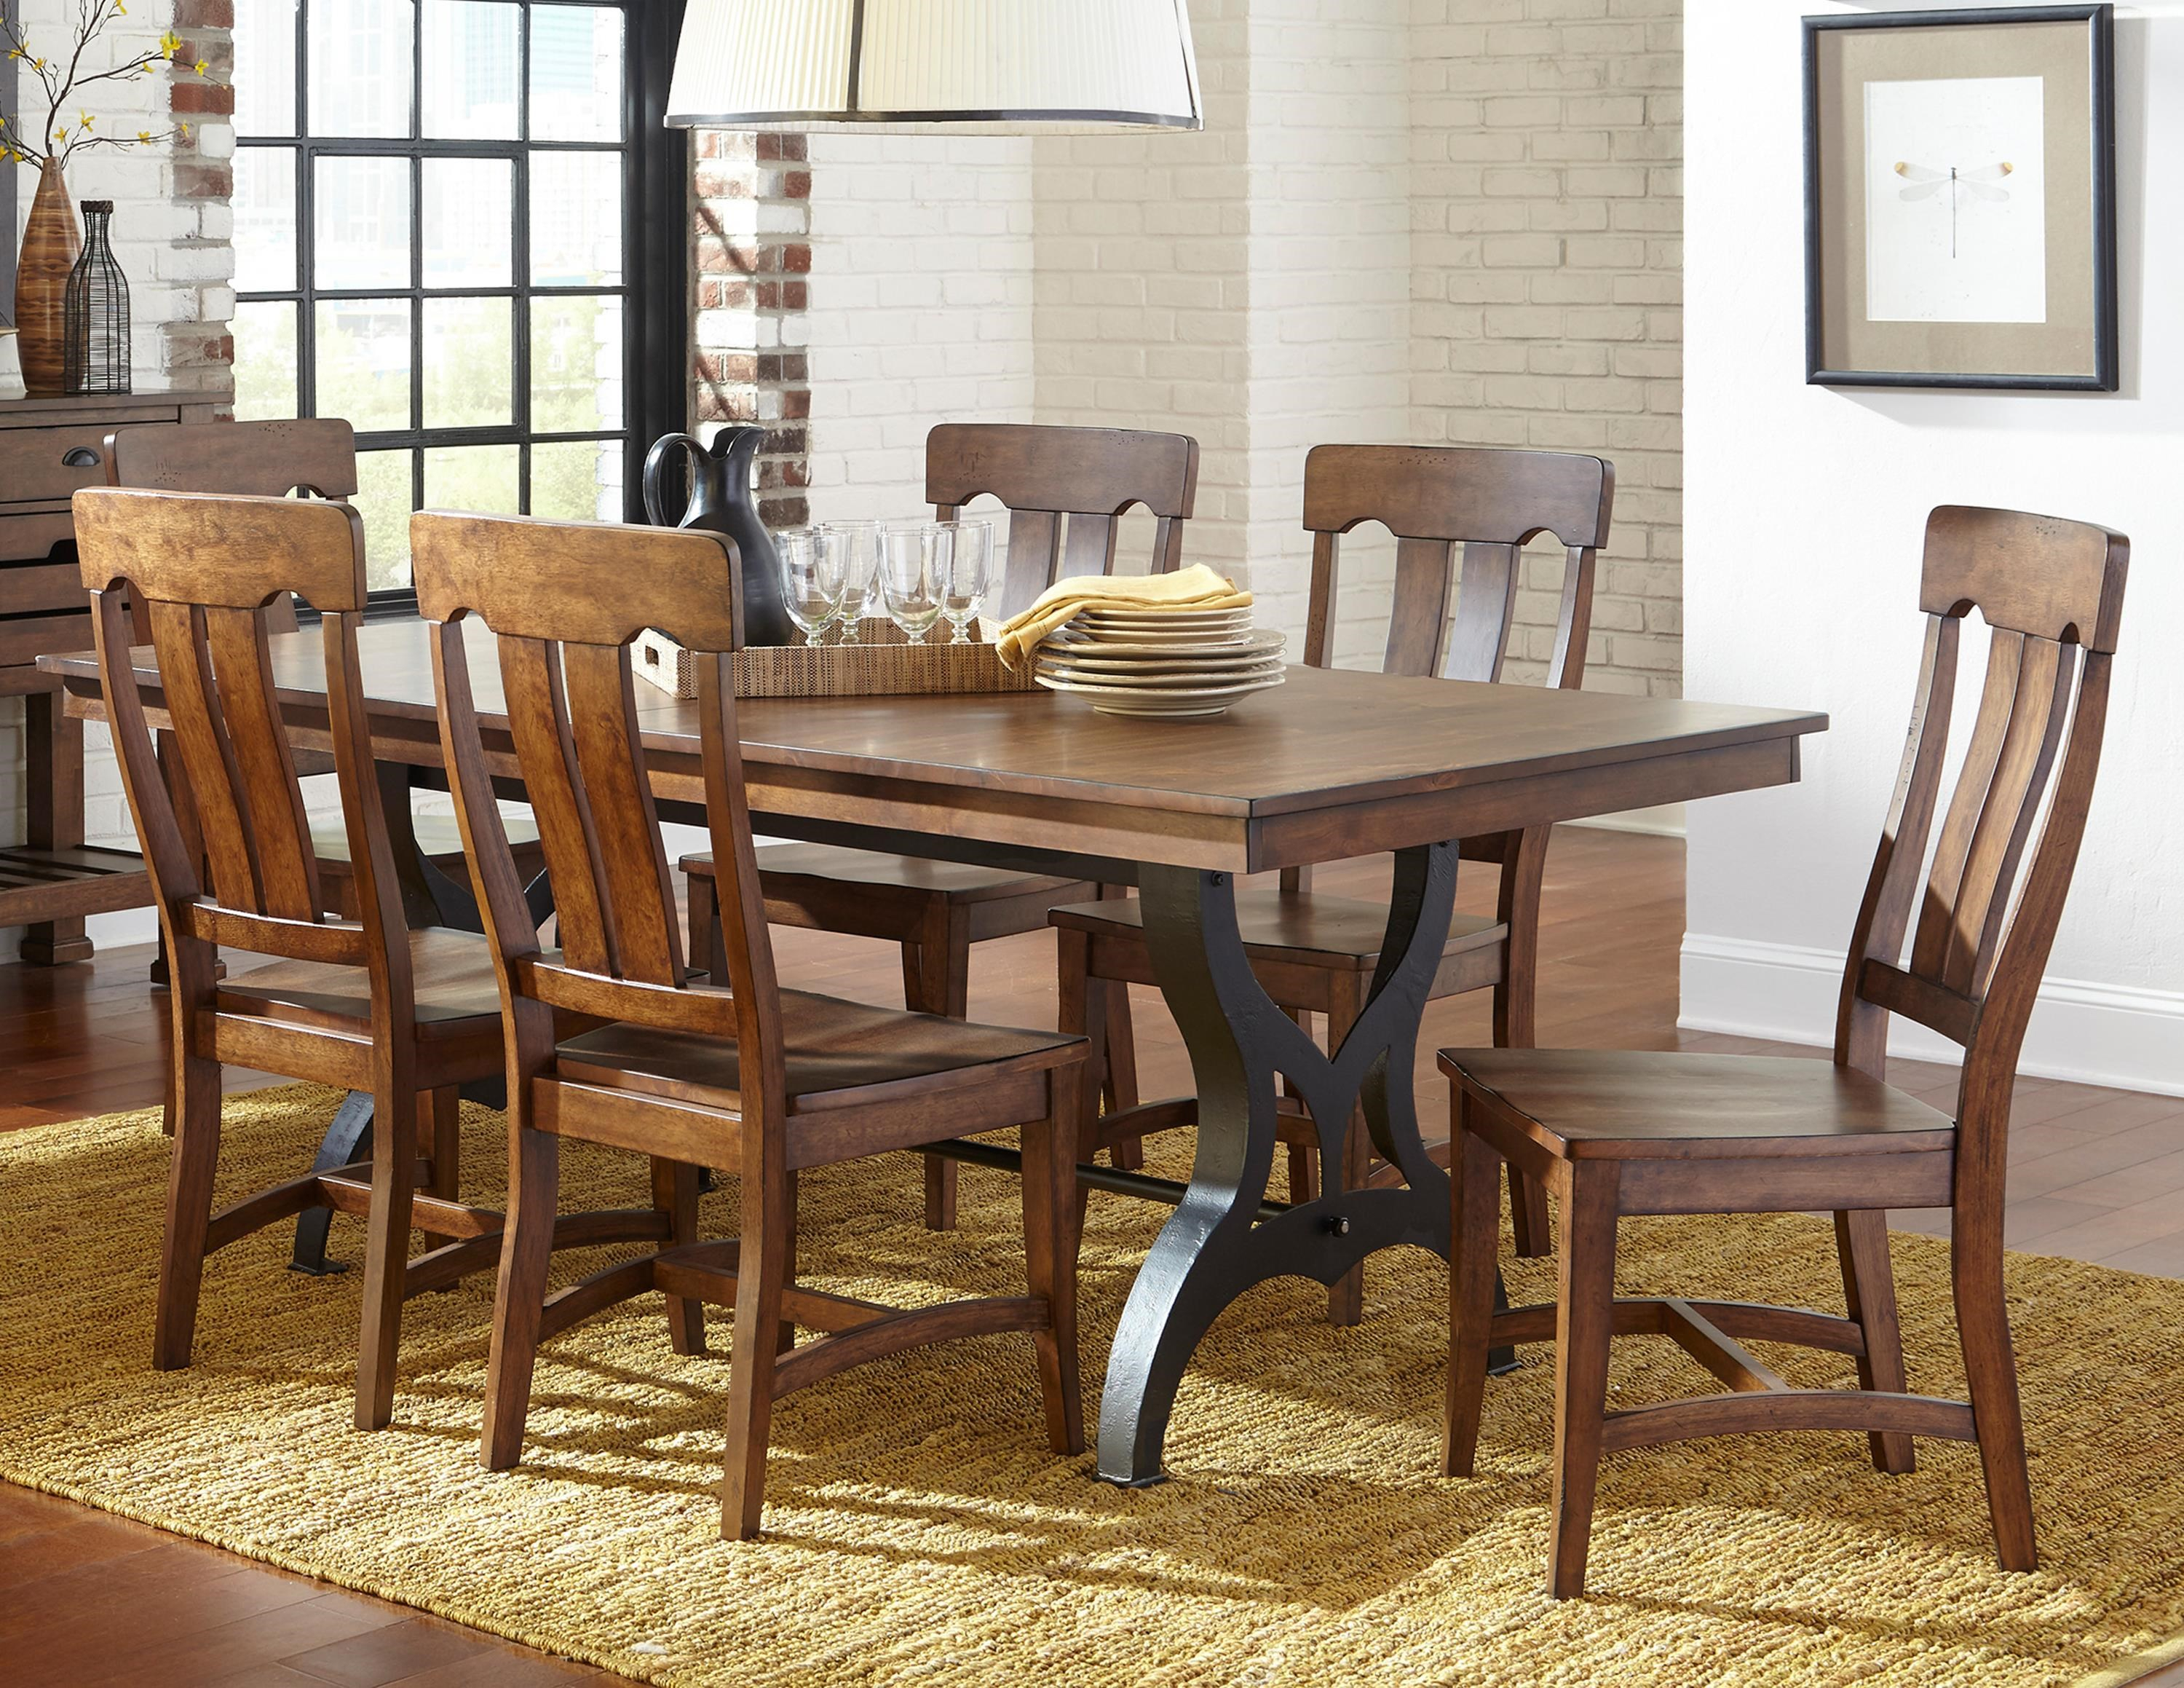 Noyes 5 Piece Dining Sets With Regard To Most Current 5 Piece Breakfast Table Sets & Vanity Pub Dining Sets In Manhattan (#9 of 20)